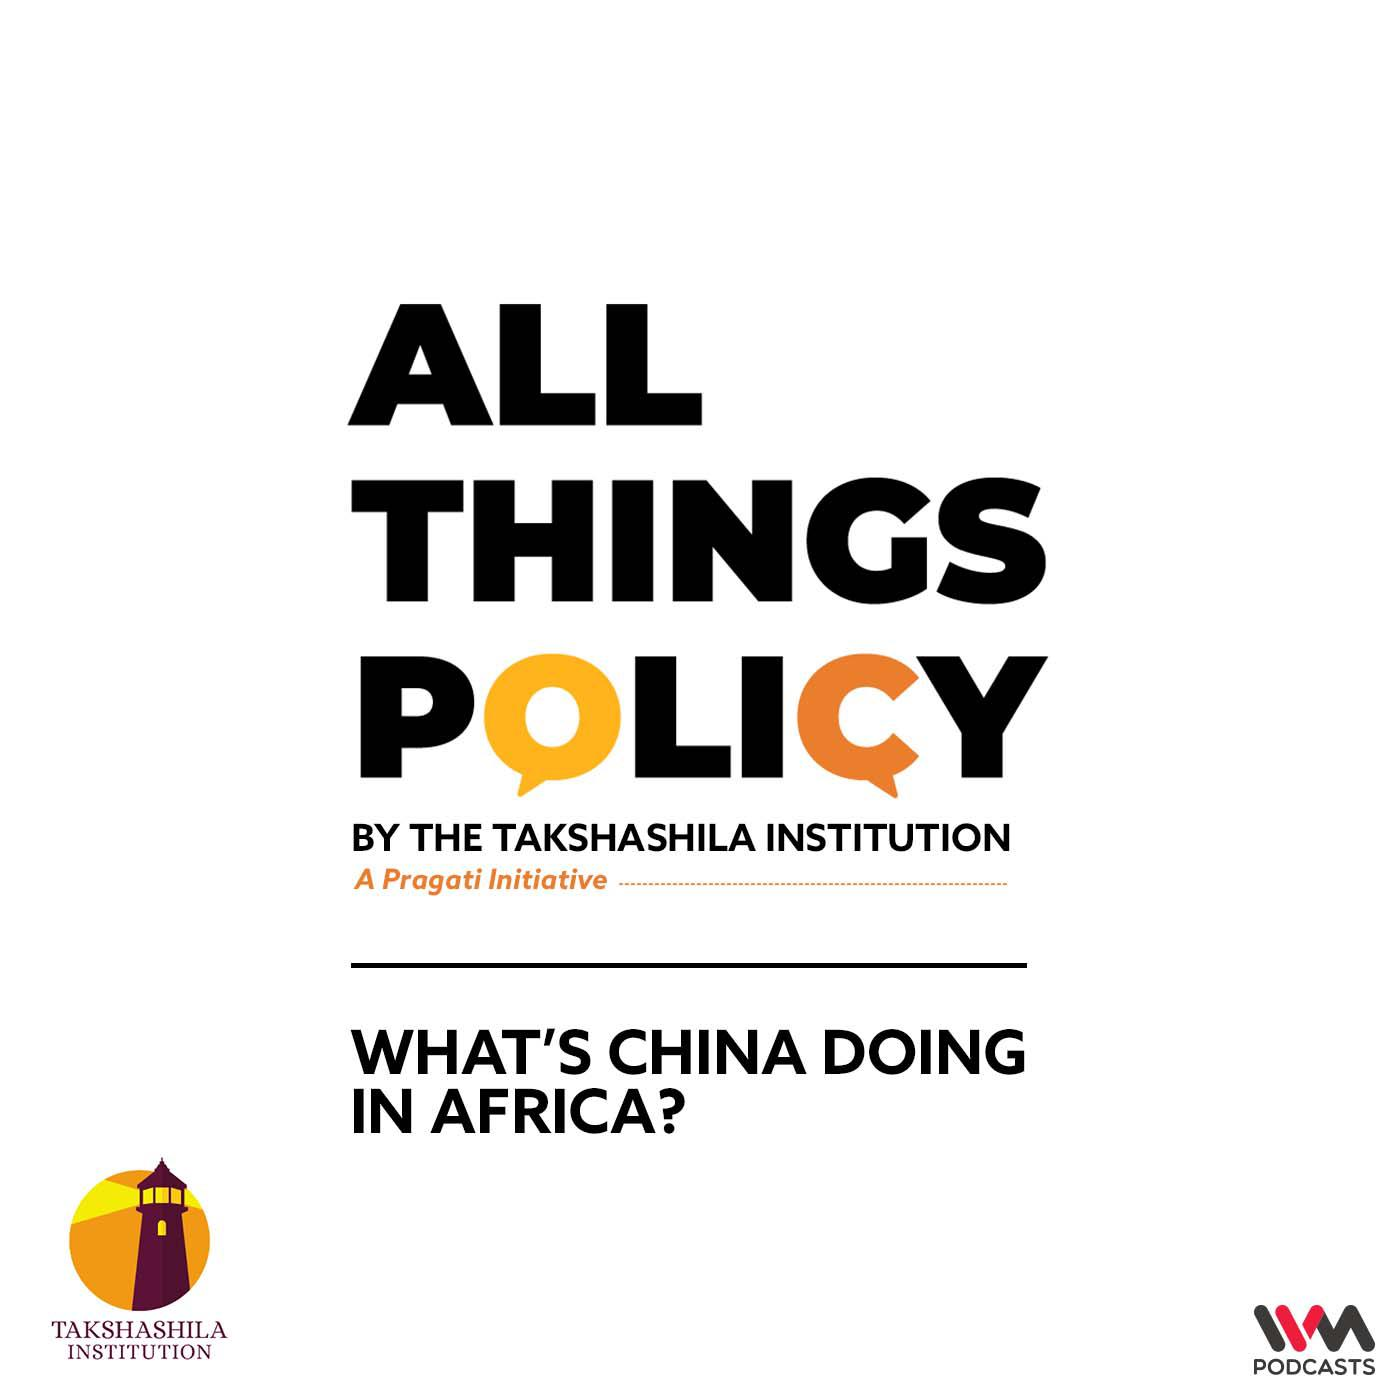 What's China doing in Africa?